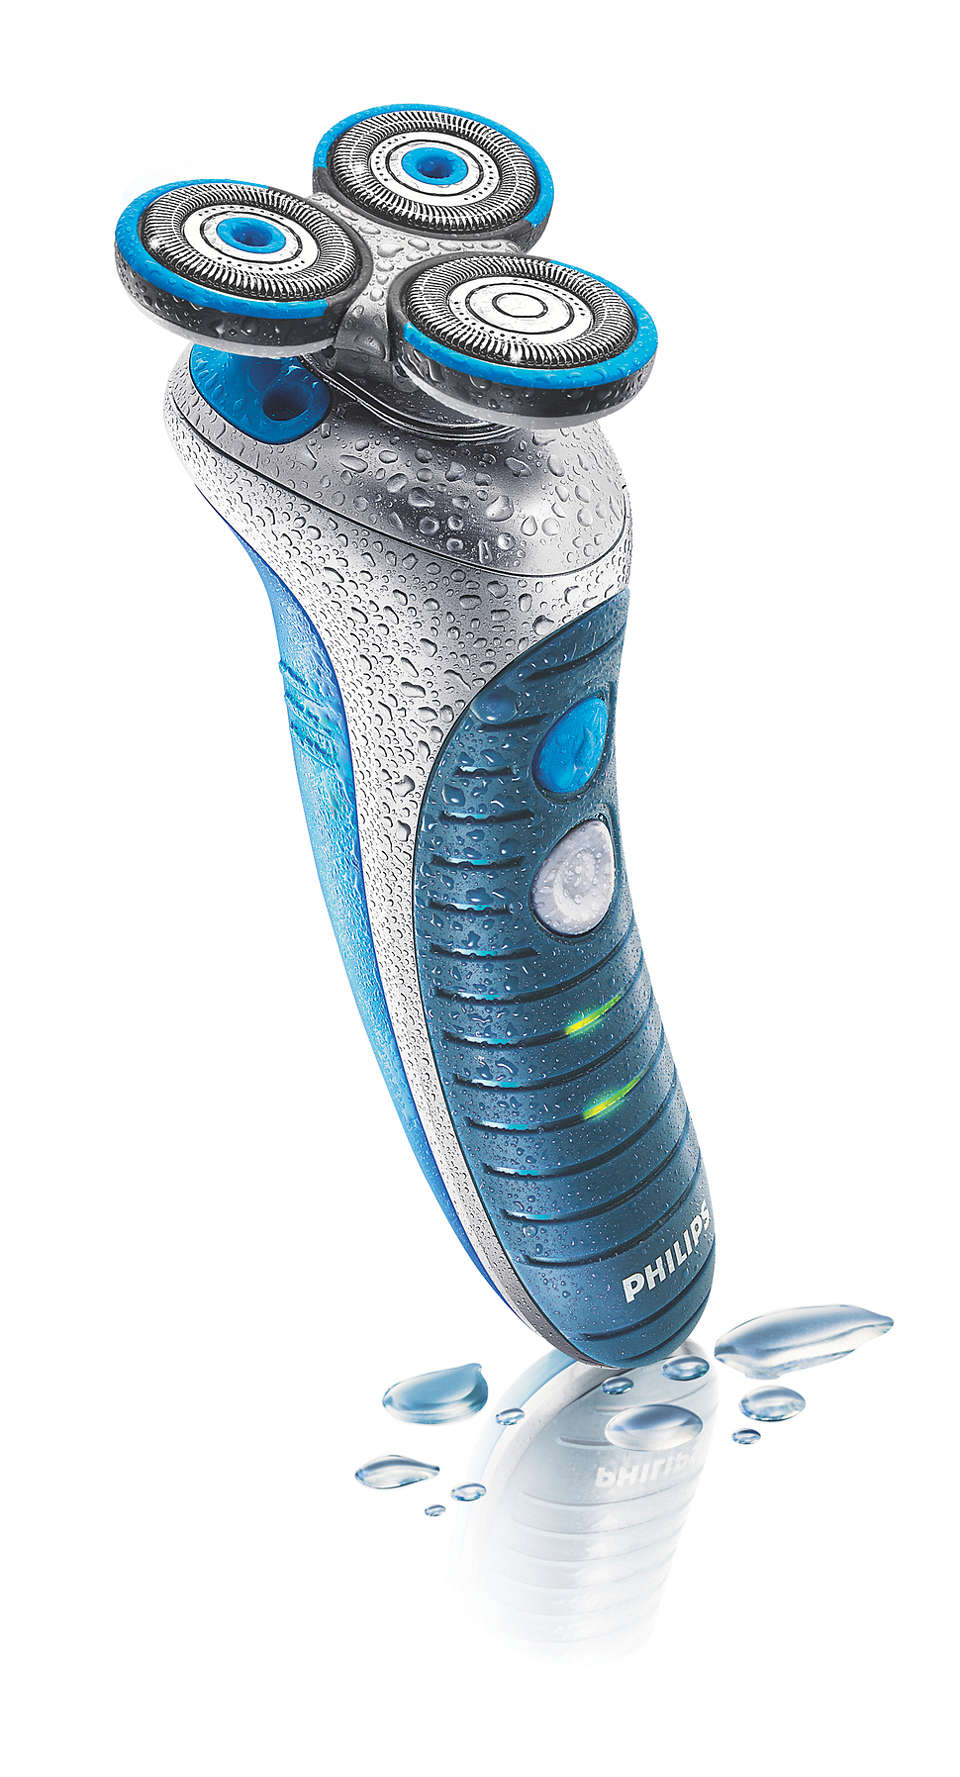 Smooth shave, healthy skin